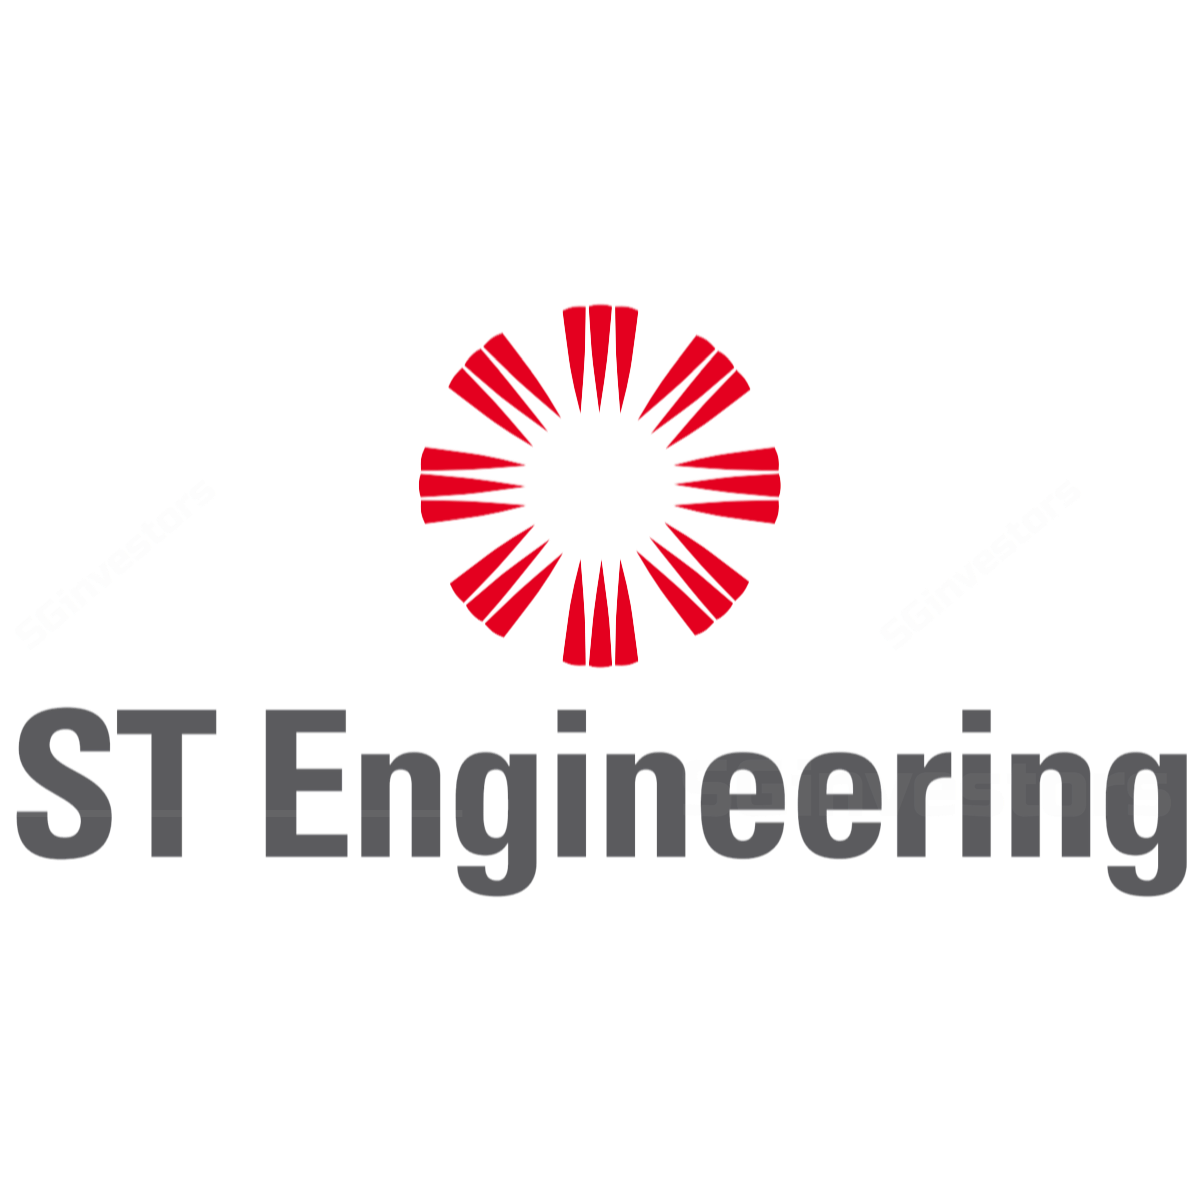 ST Engineering (STE SP) - DBS Vickers 2018-03-23: Investor Day Takeaways; Greater Visibility On Growth